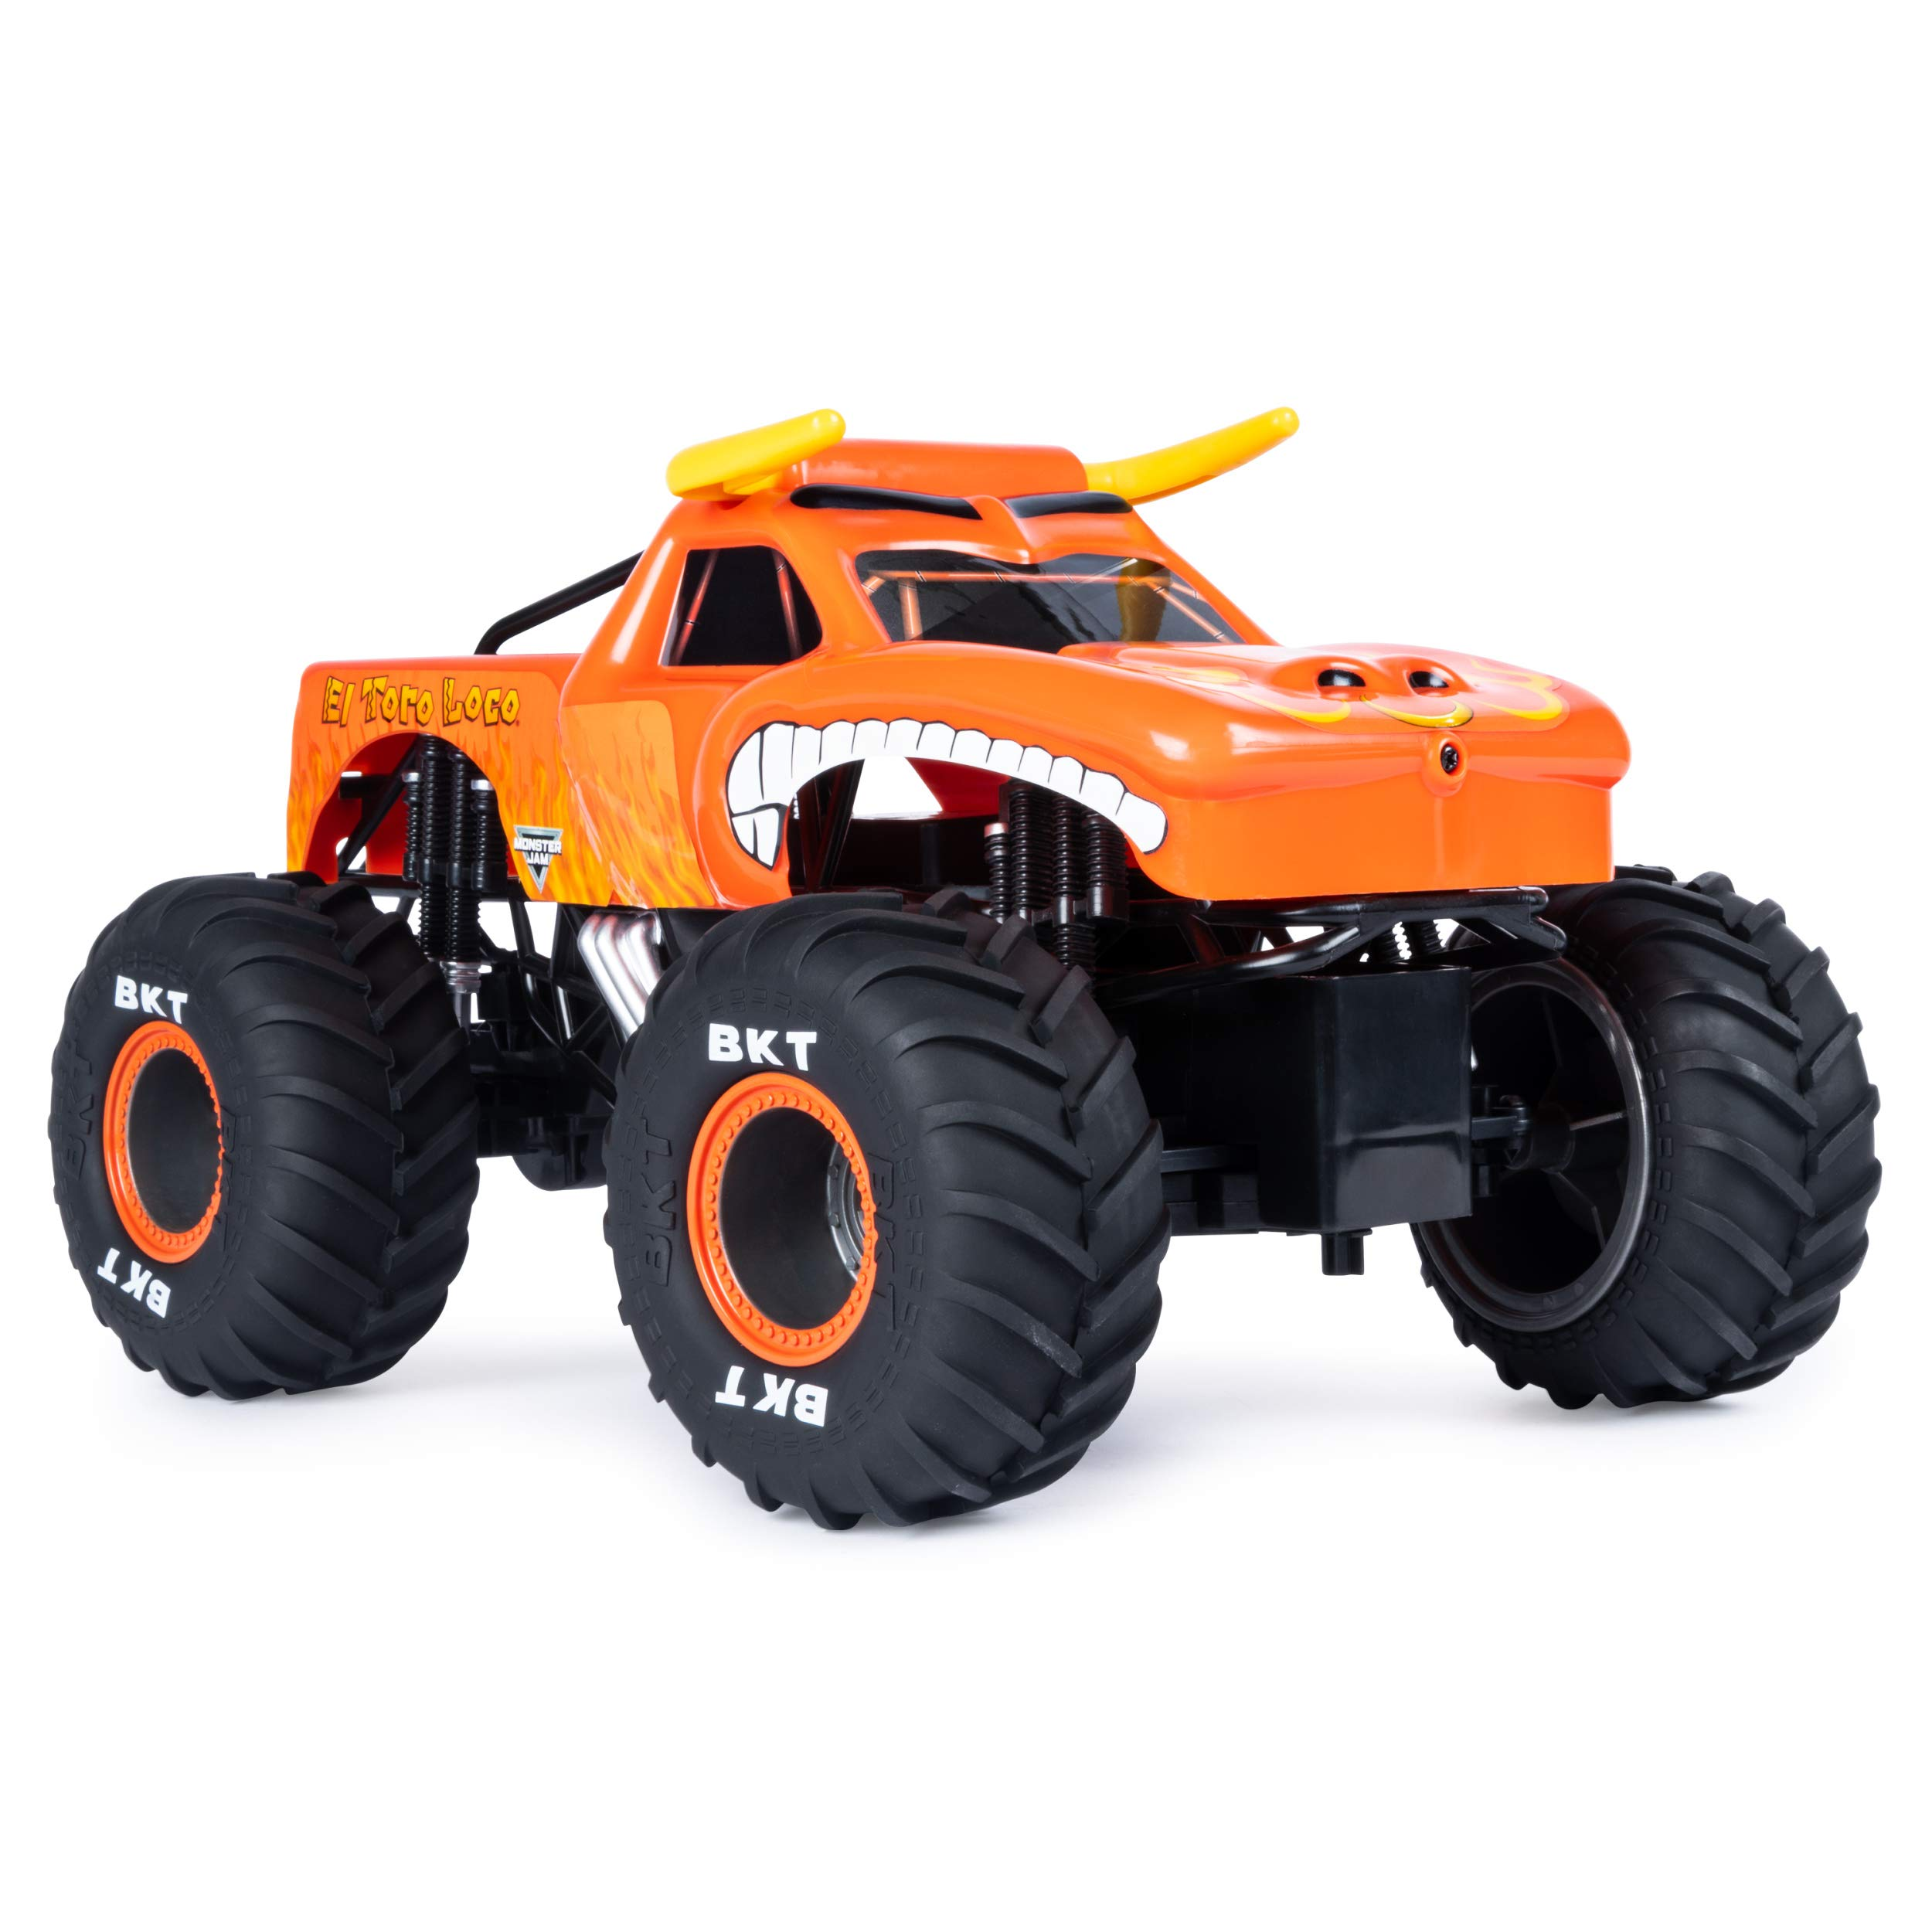 Monster Jam Official El Toro Loco Remote Control Monster Truck, 1:15 Scale, 2.4 GHz by Monster Jam (Image #4)